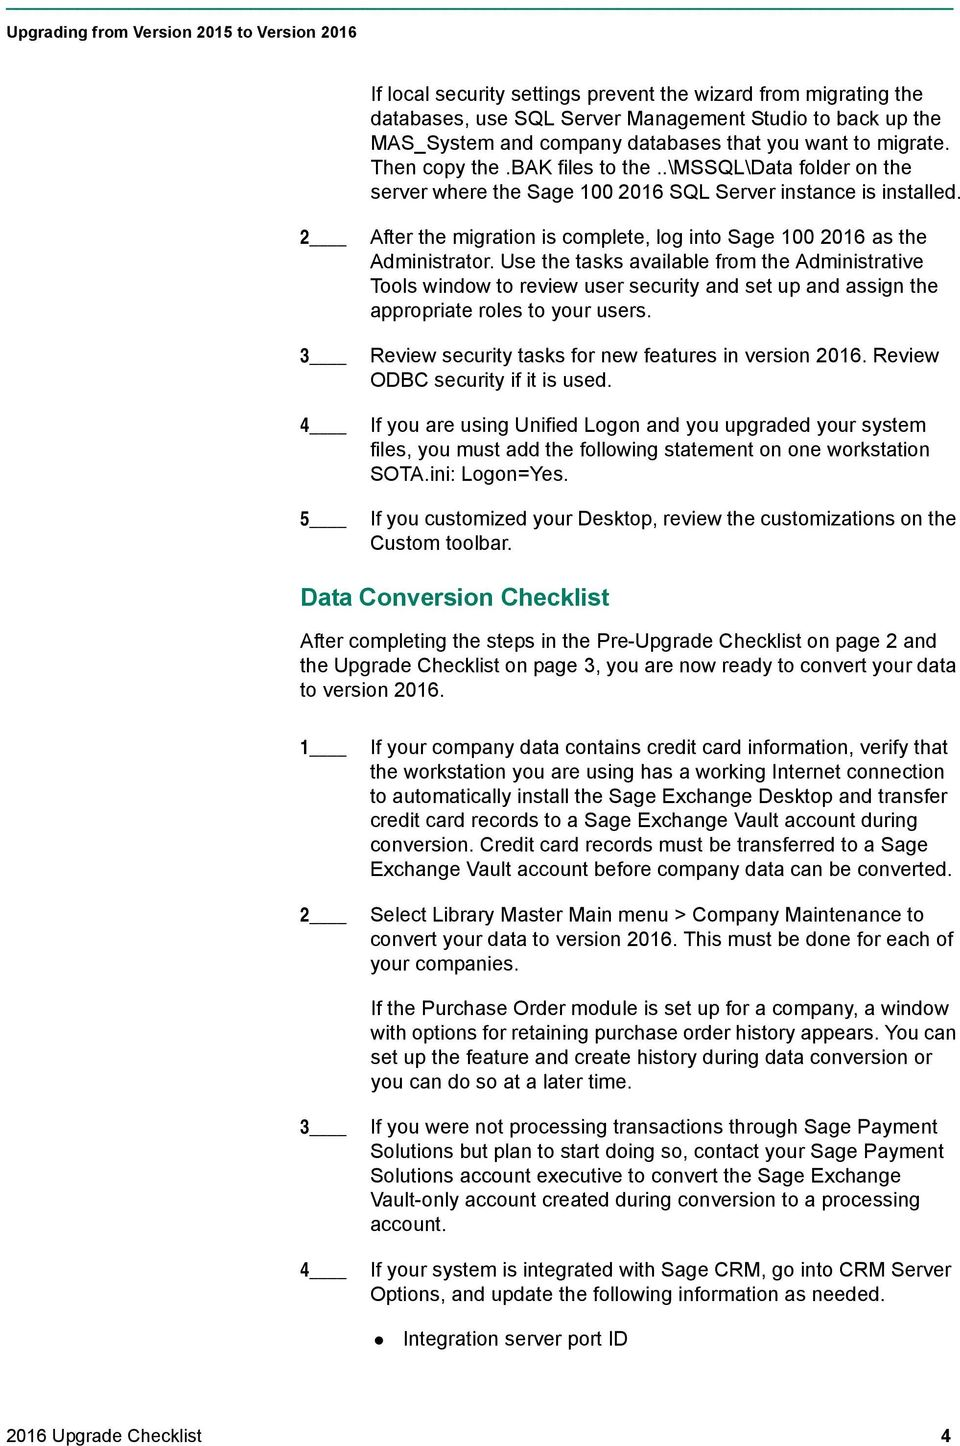 2016 Upgrade Checklist - PDF